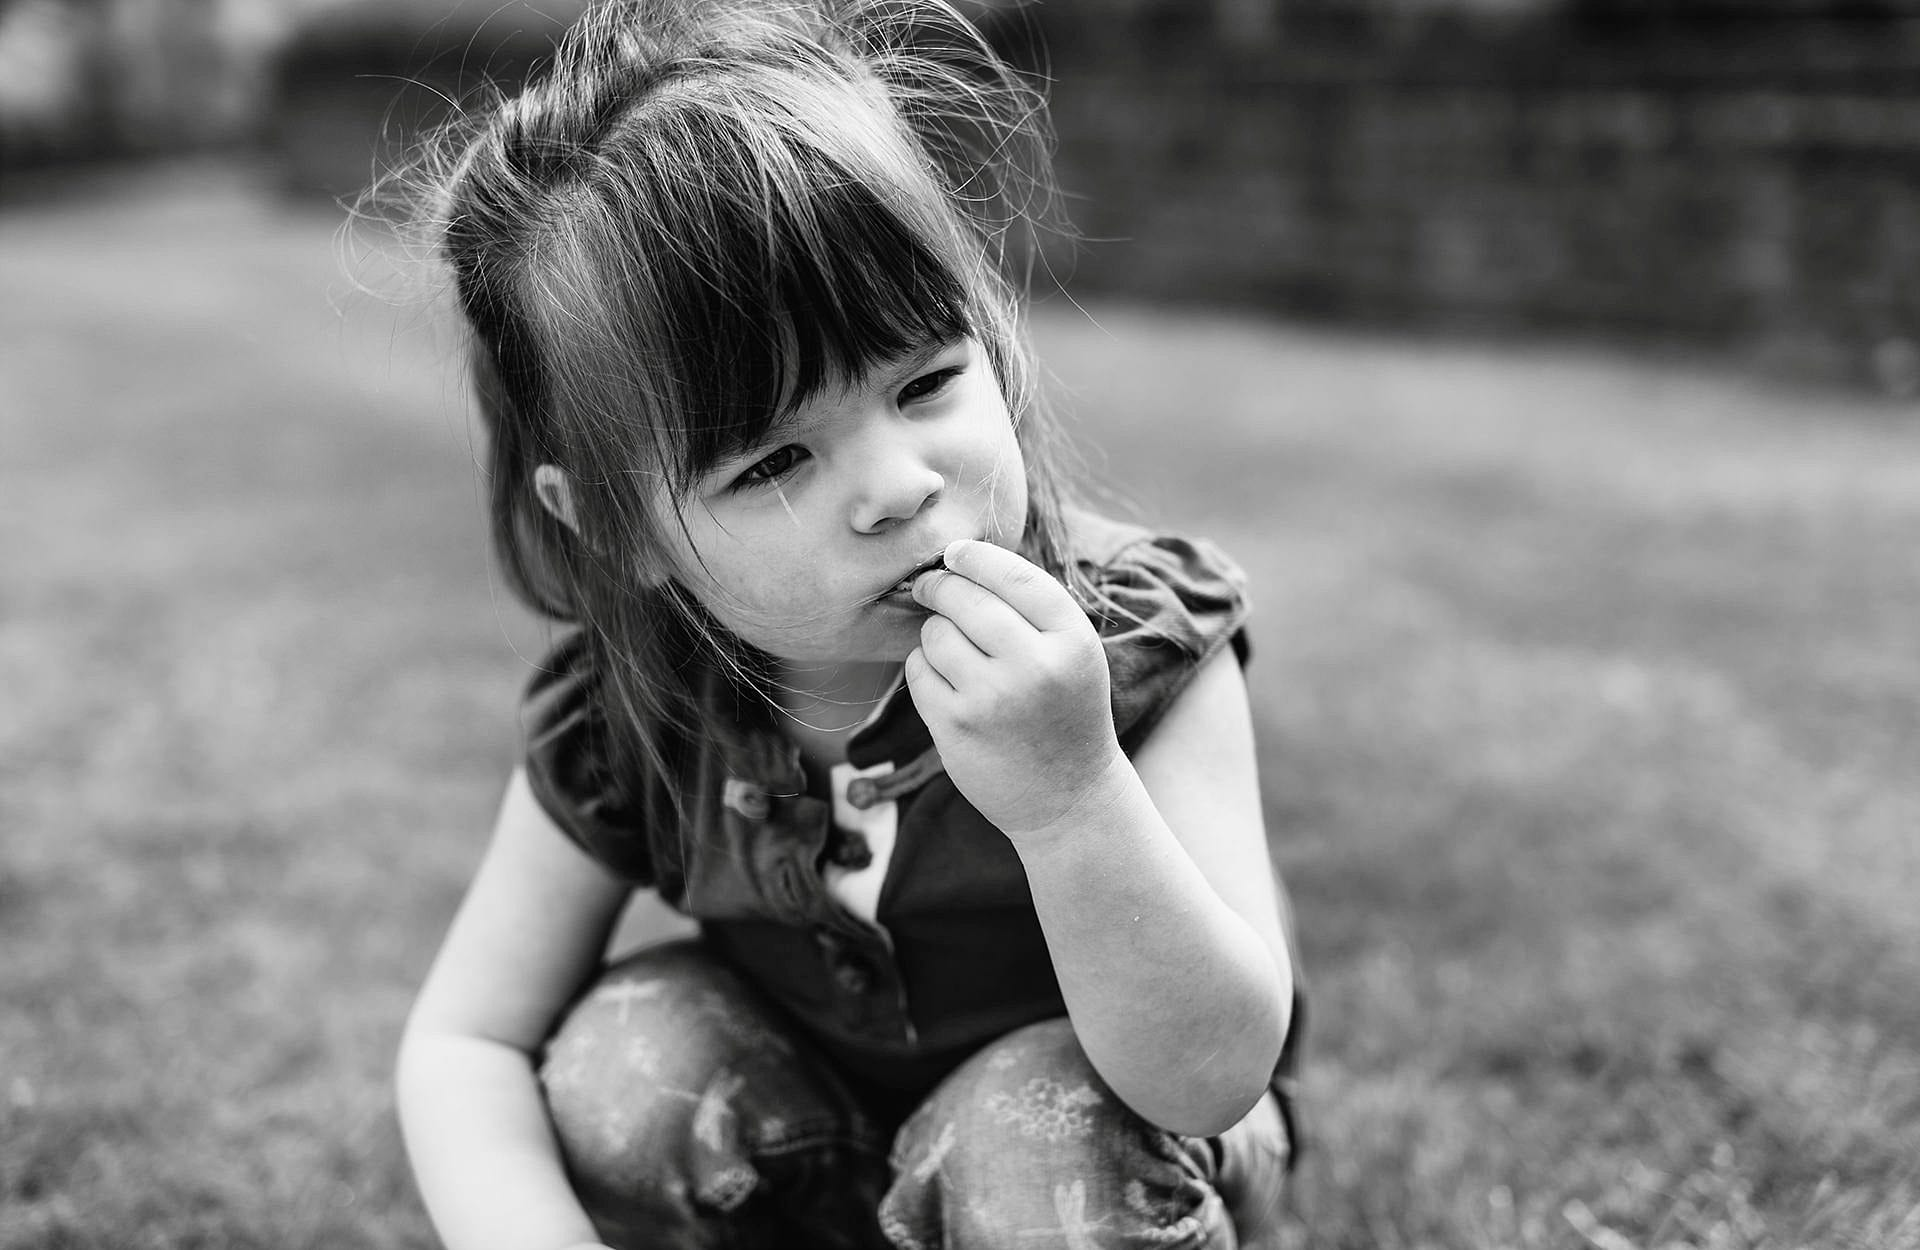 Girl eating some grass looking thoughtful